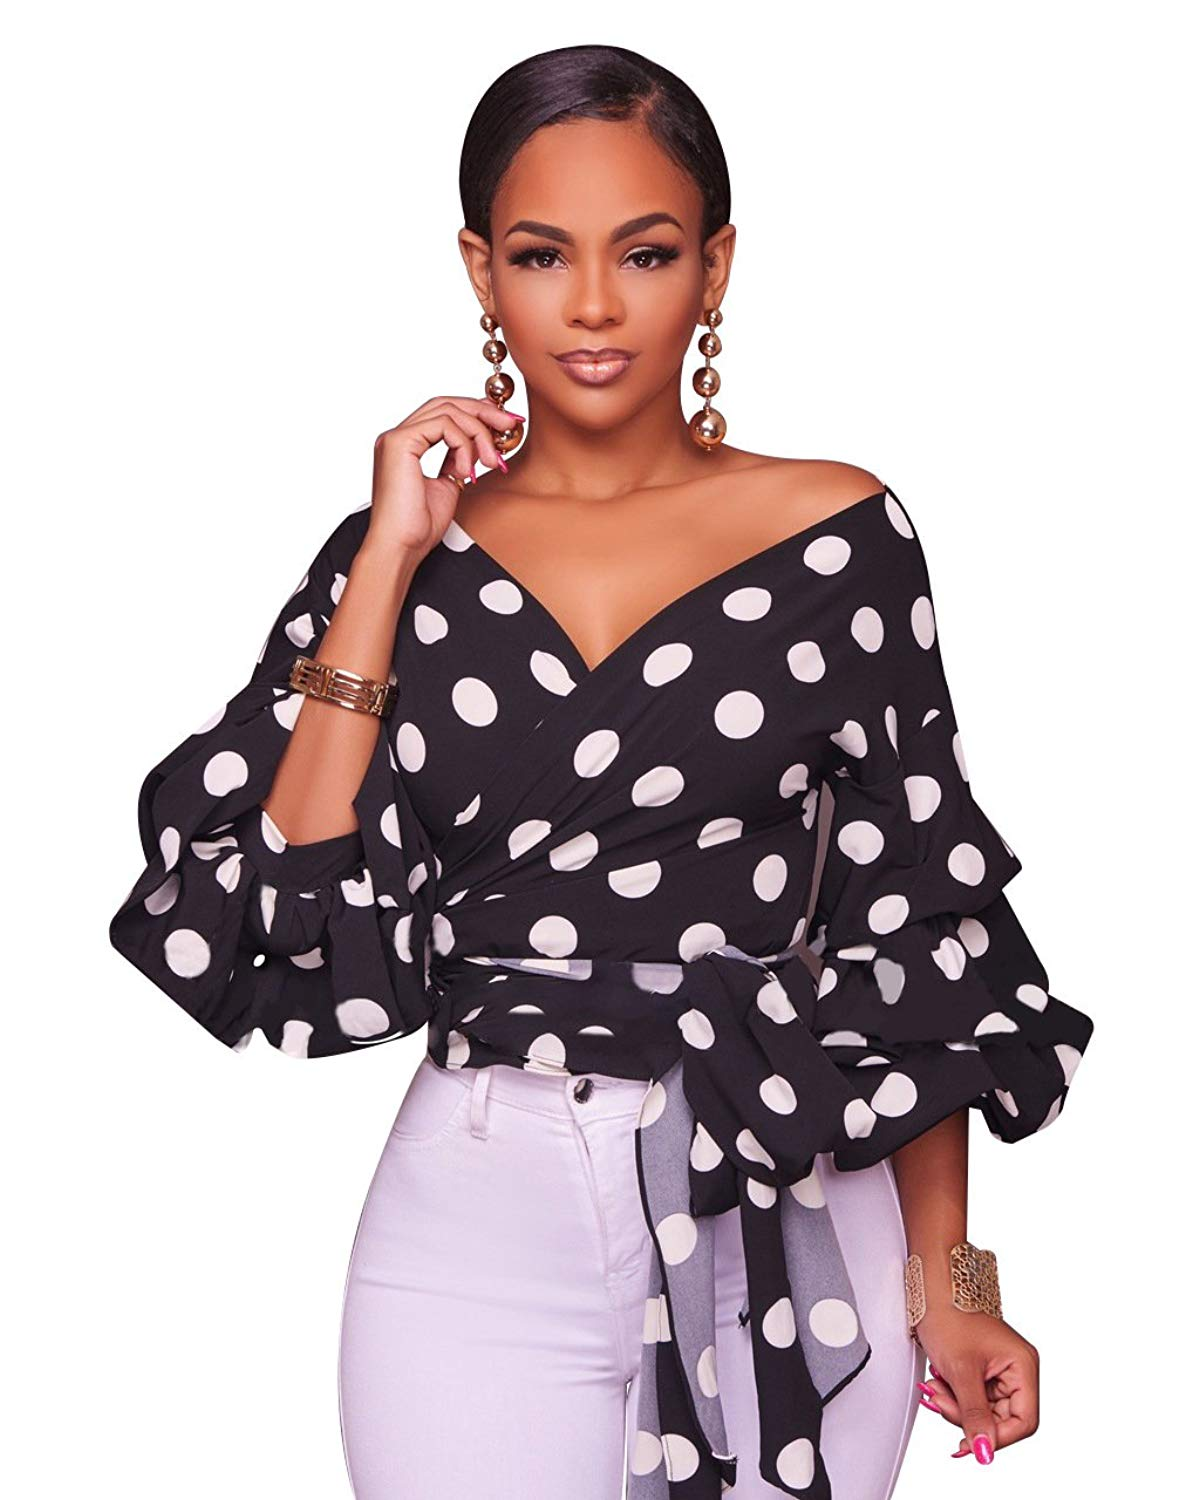 7034cb0ccede Get Quotations · LHS Charmer Women's Elegant V Neck Wrap Long Puff Sleeve  Polka Dots Blouse Shirt Tops with